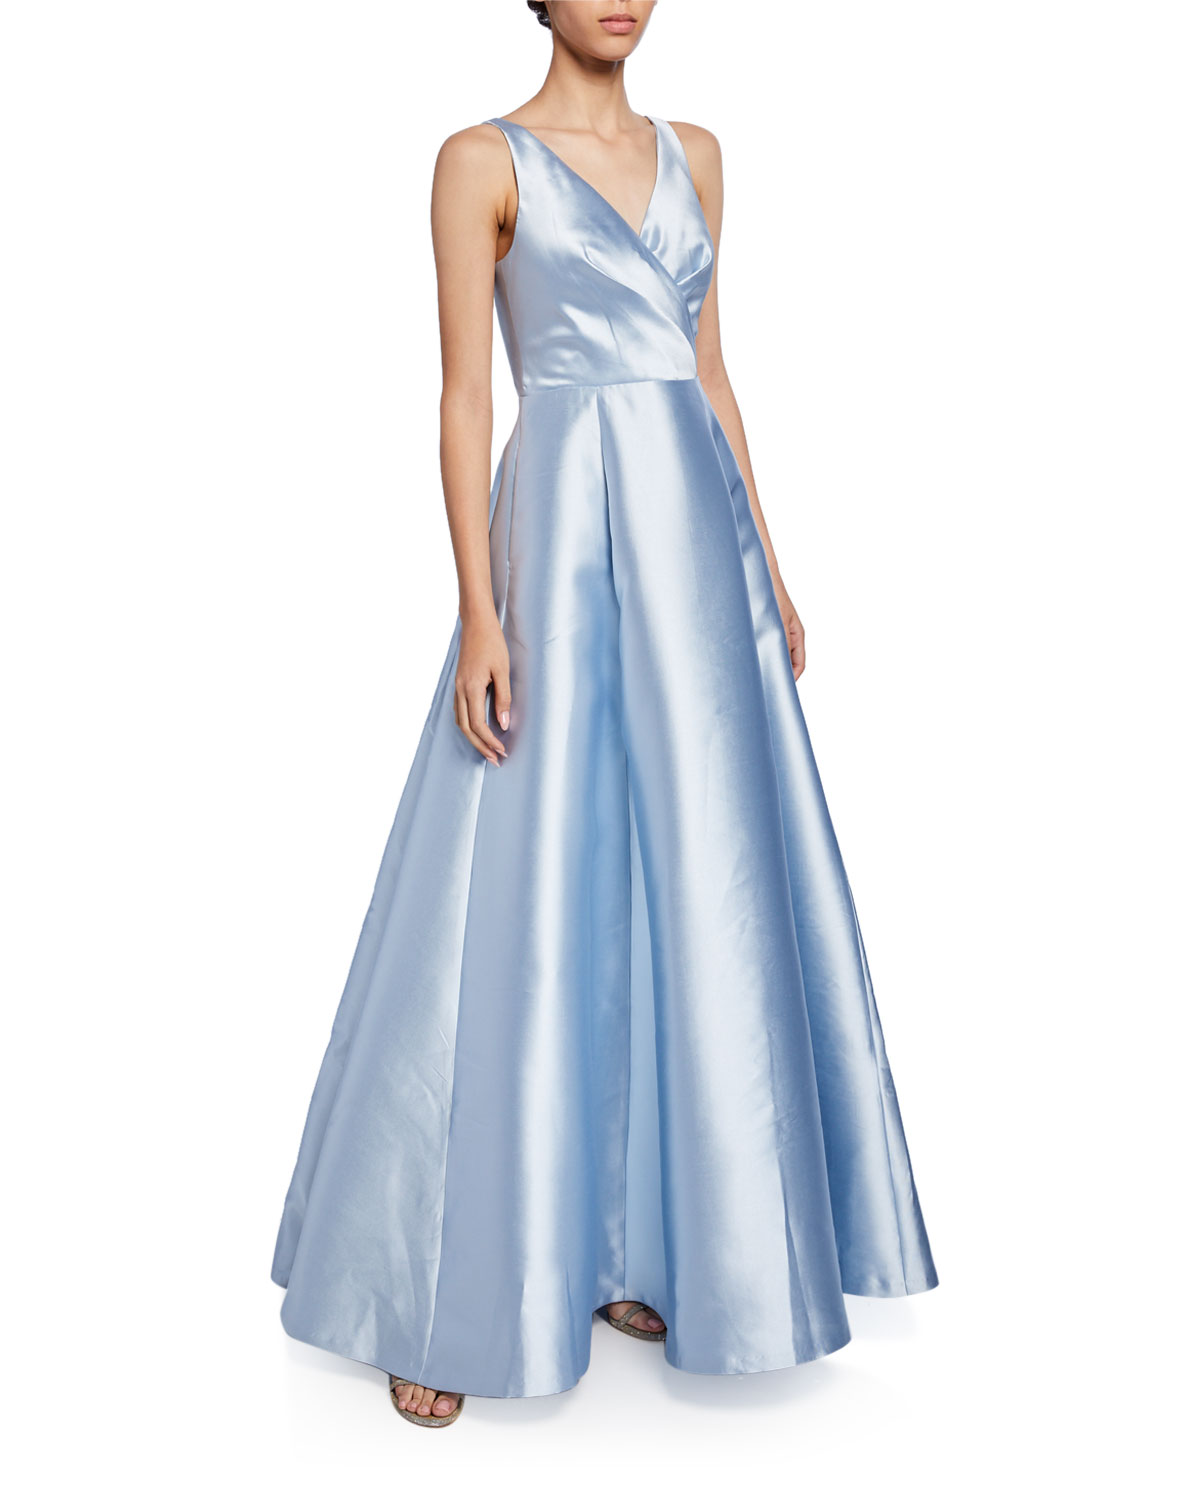 Sachin & Babi Rae Crossover Fit-&-Flare Ball Gown